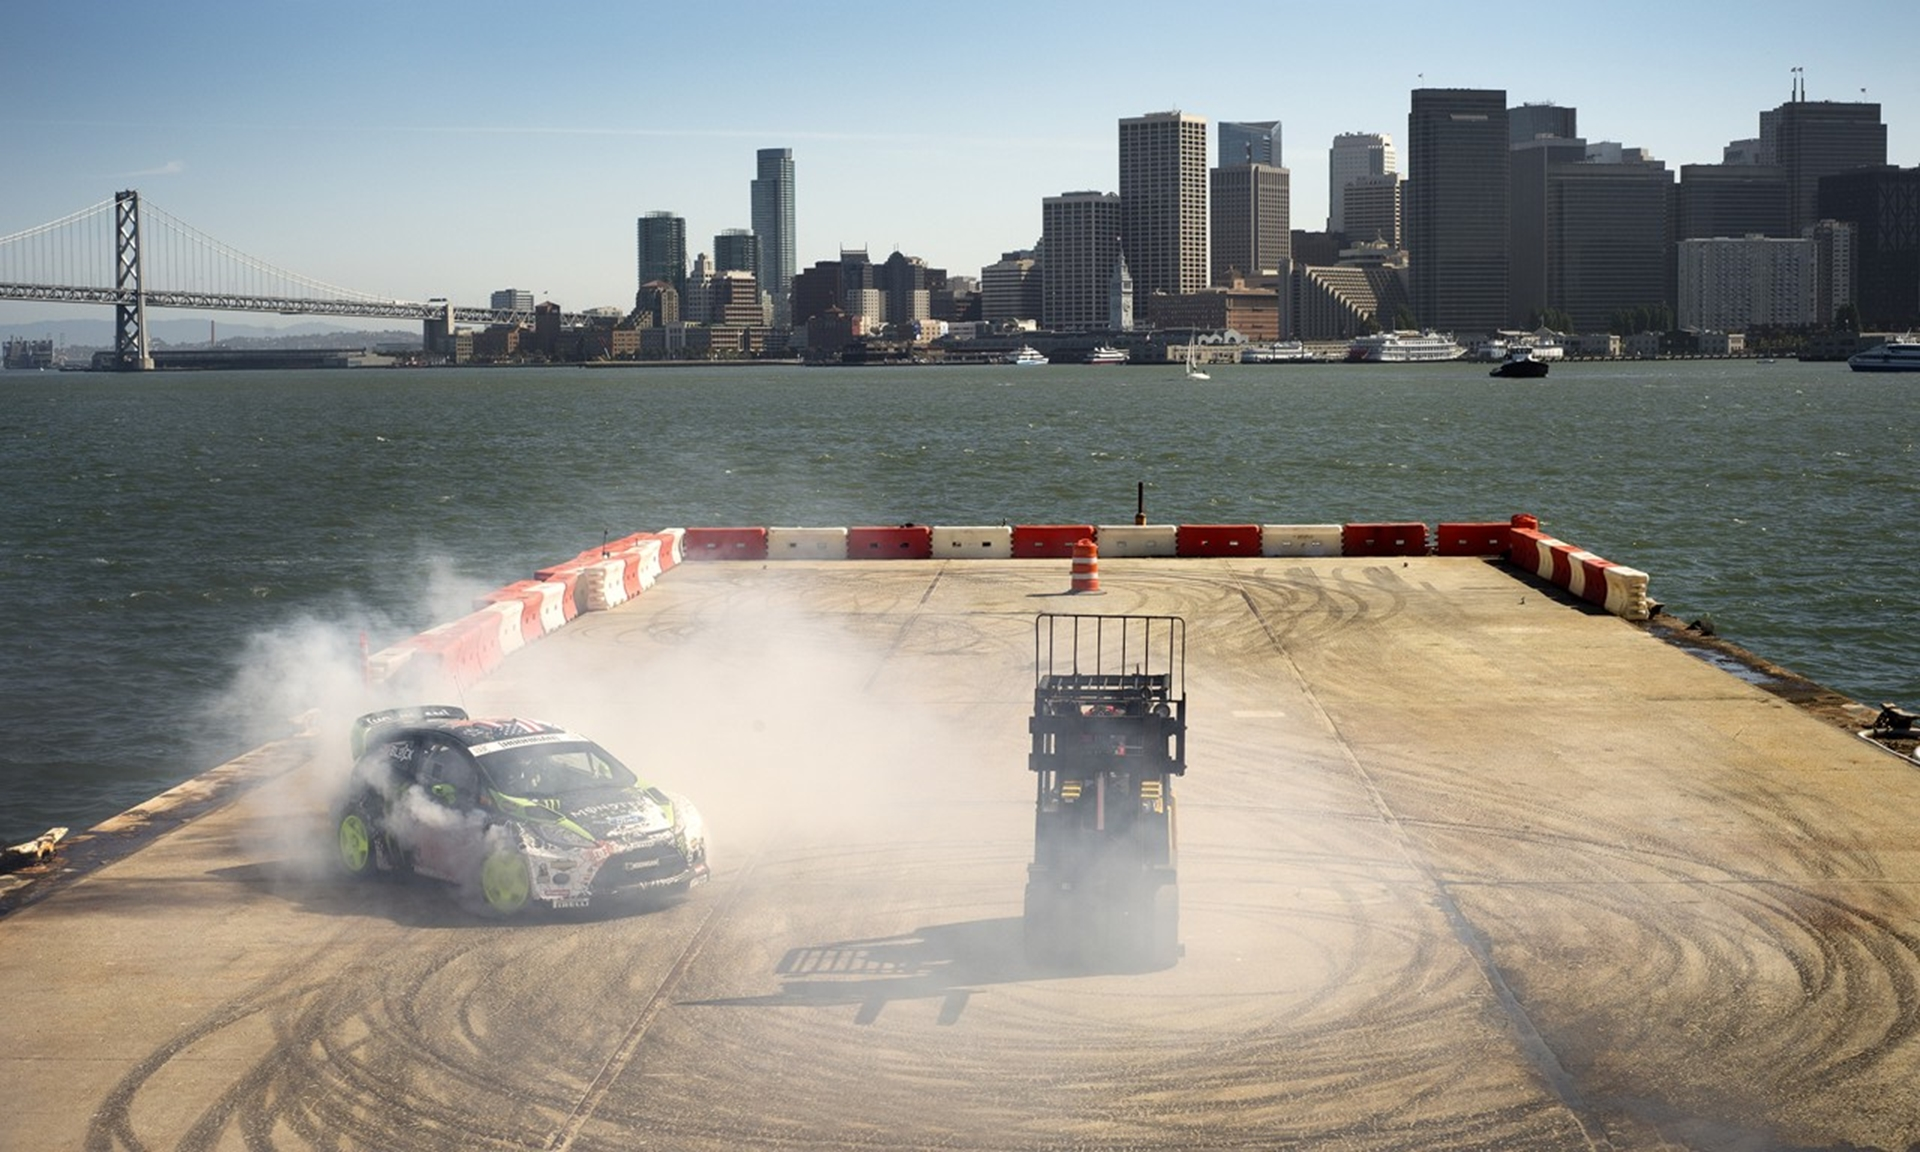 Ken Blocks Gymkhana